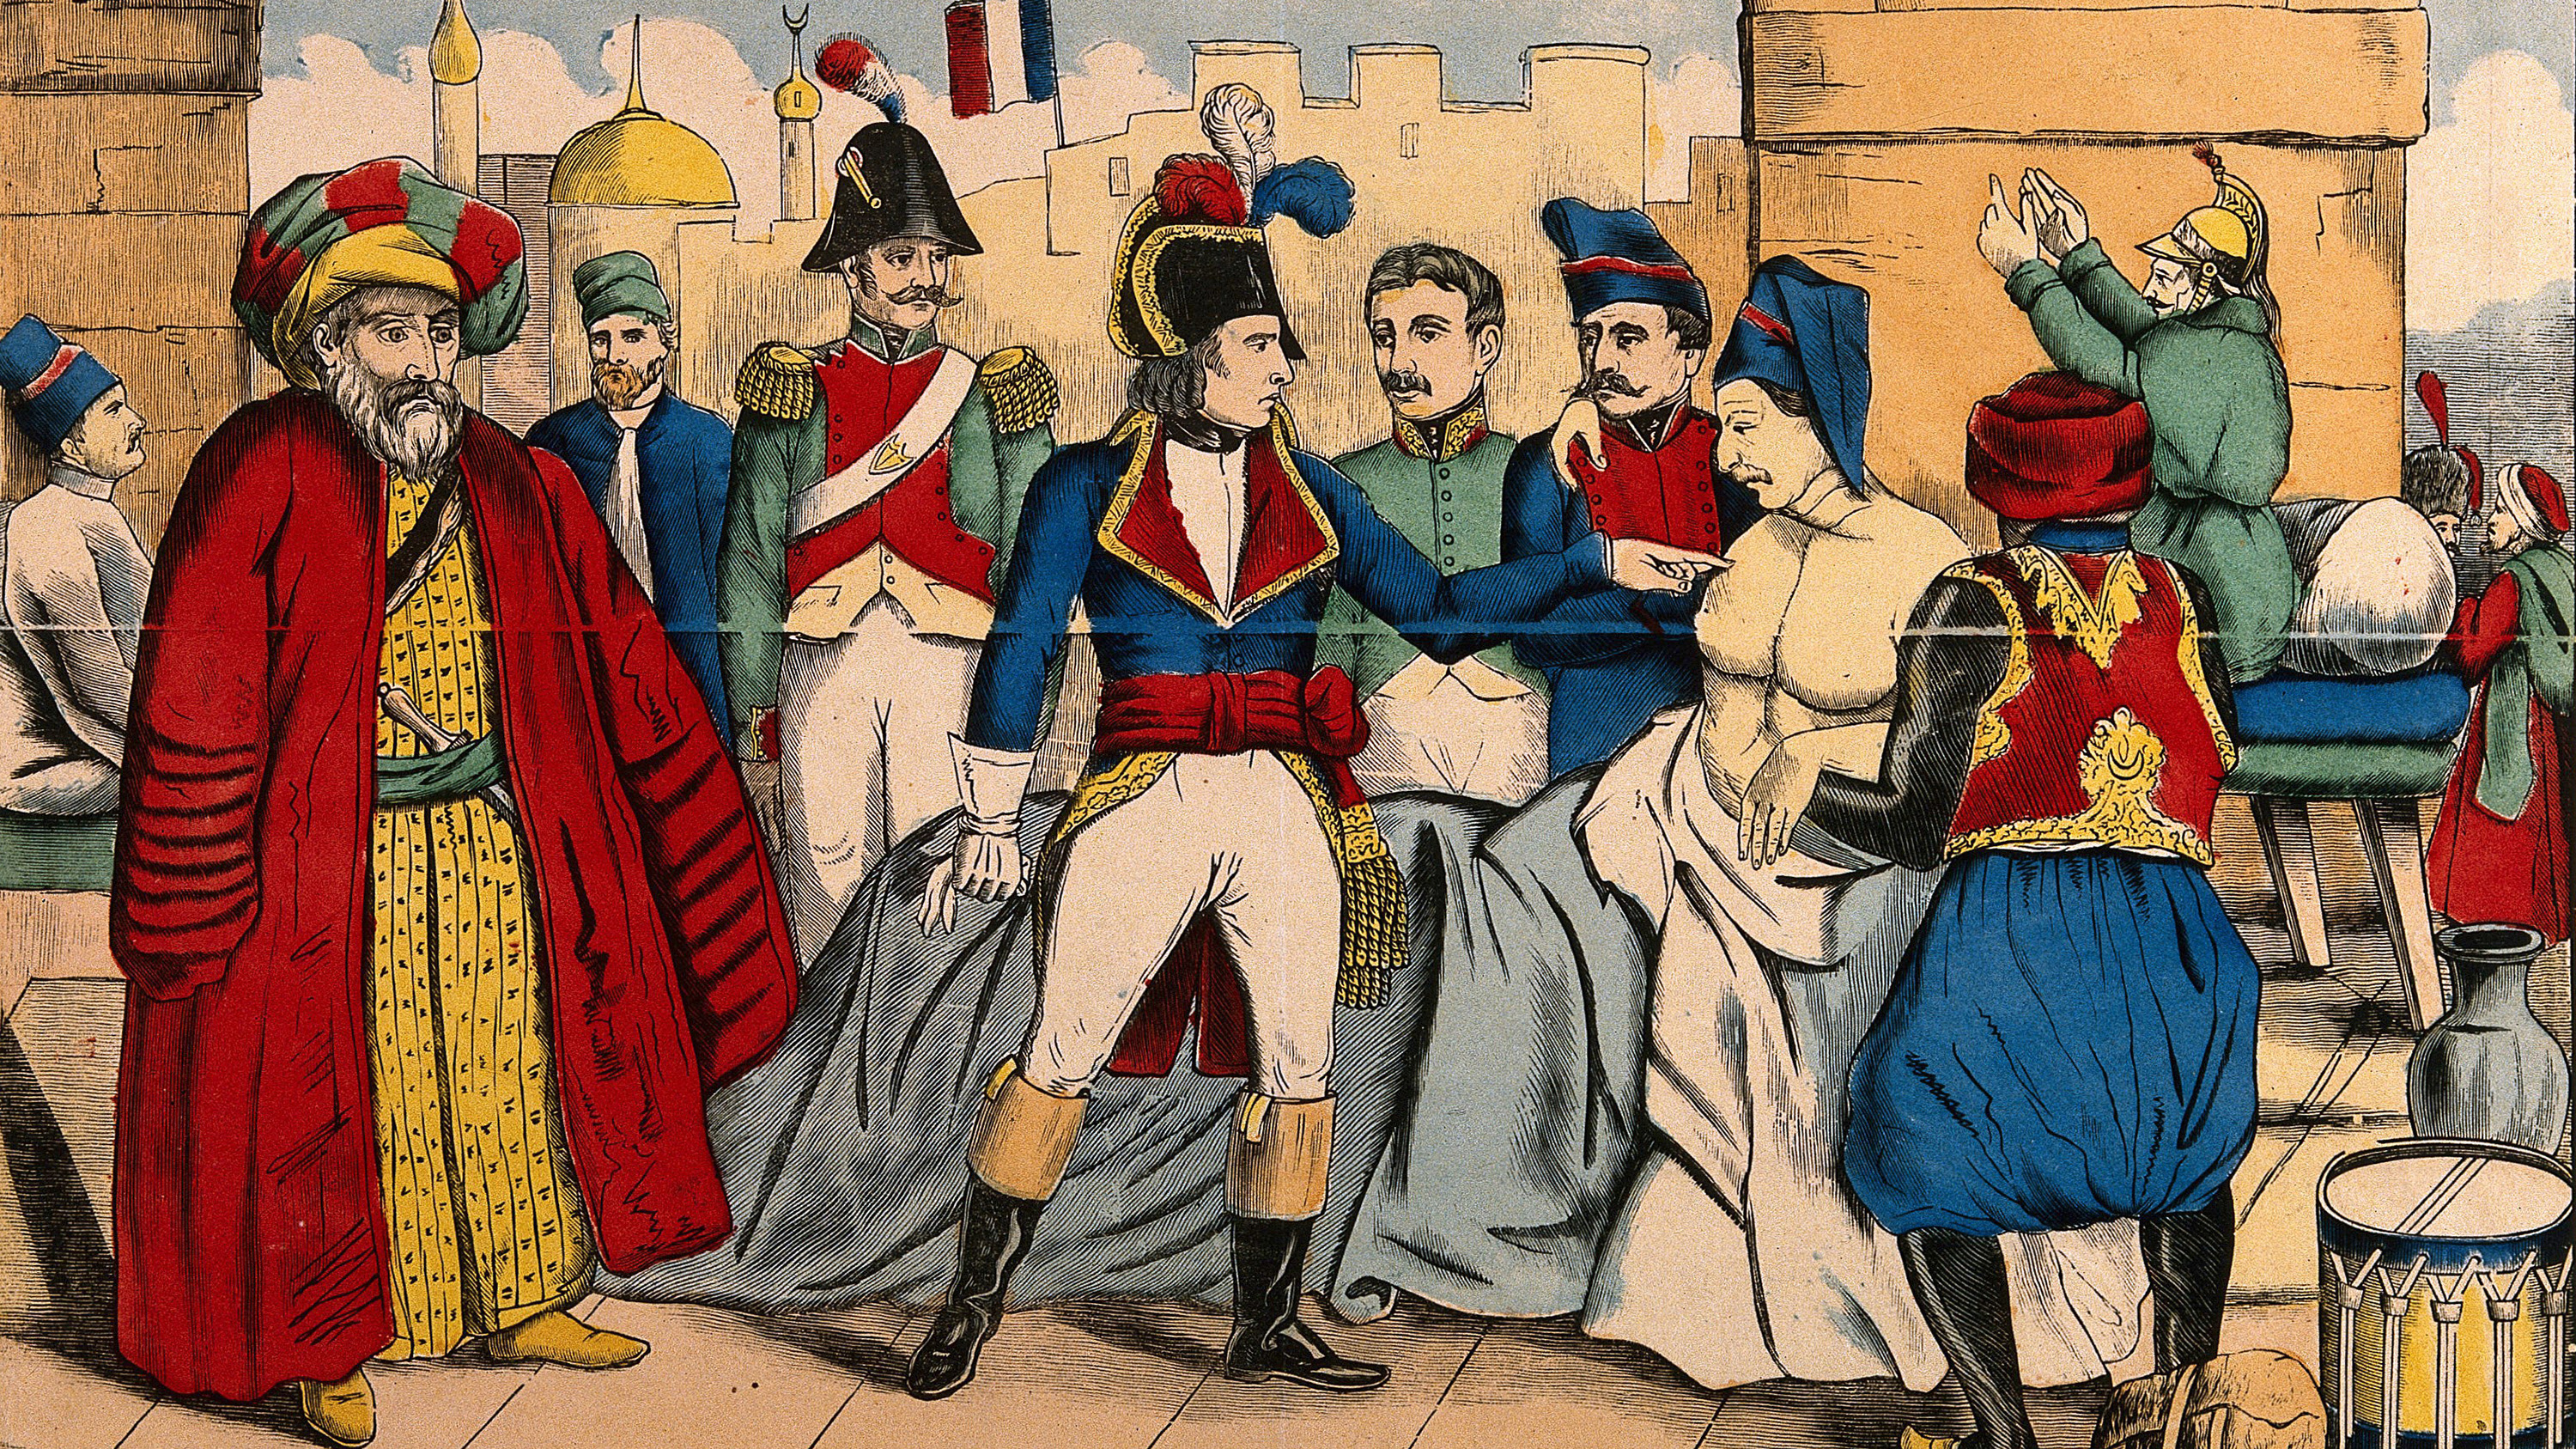 The image is a colorful artist rendition of Napoleon with a plague victim.